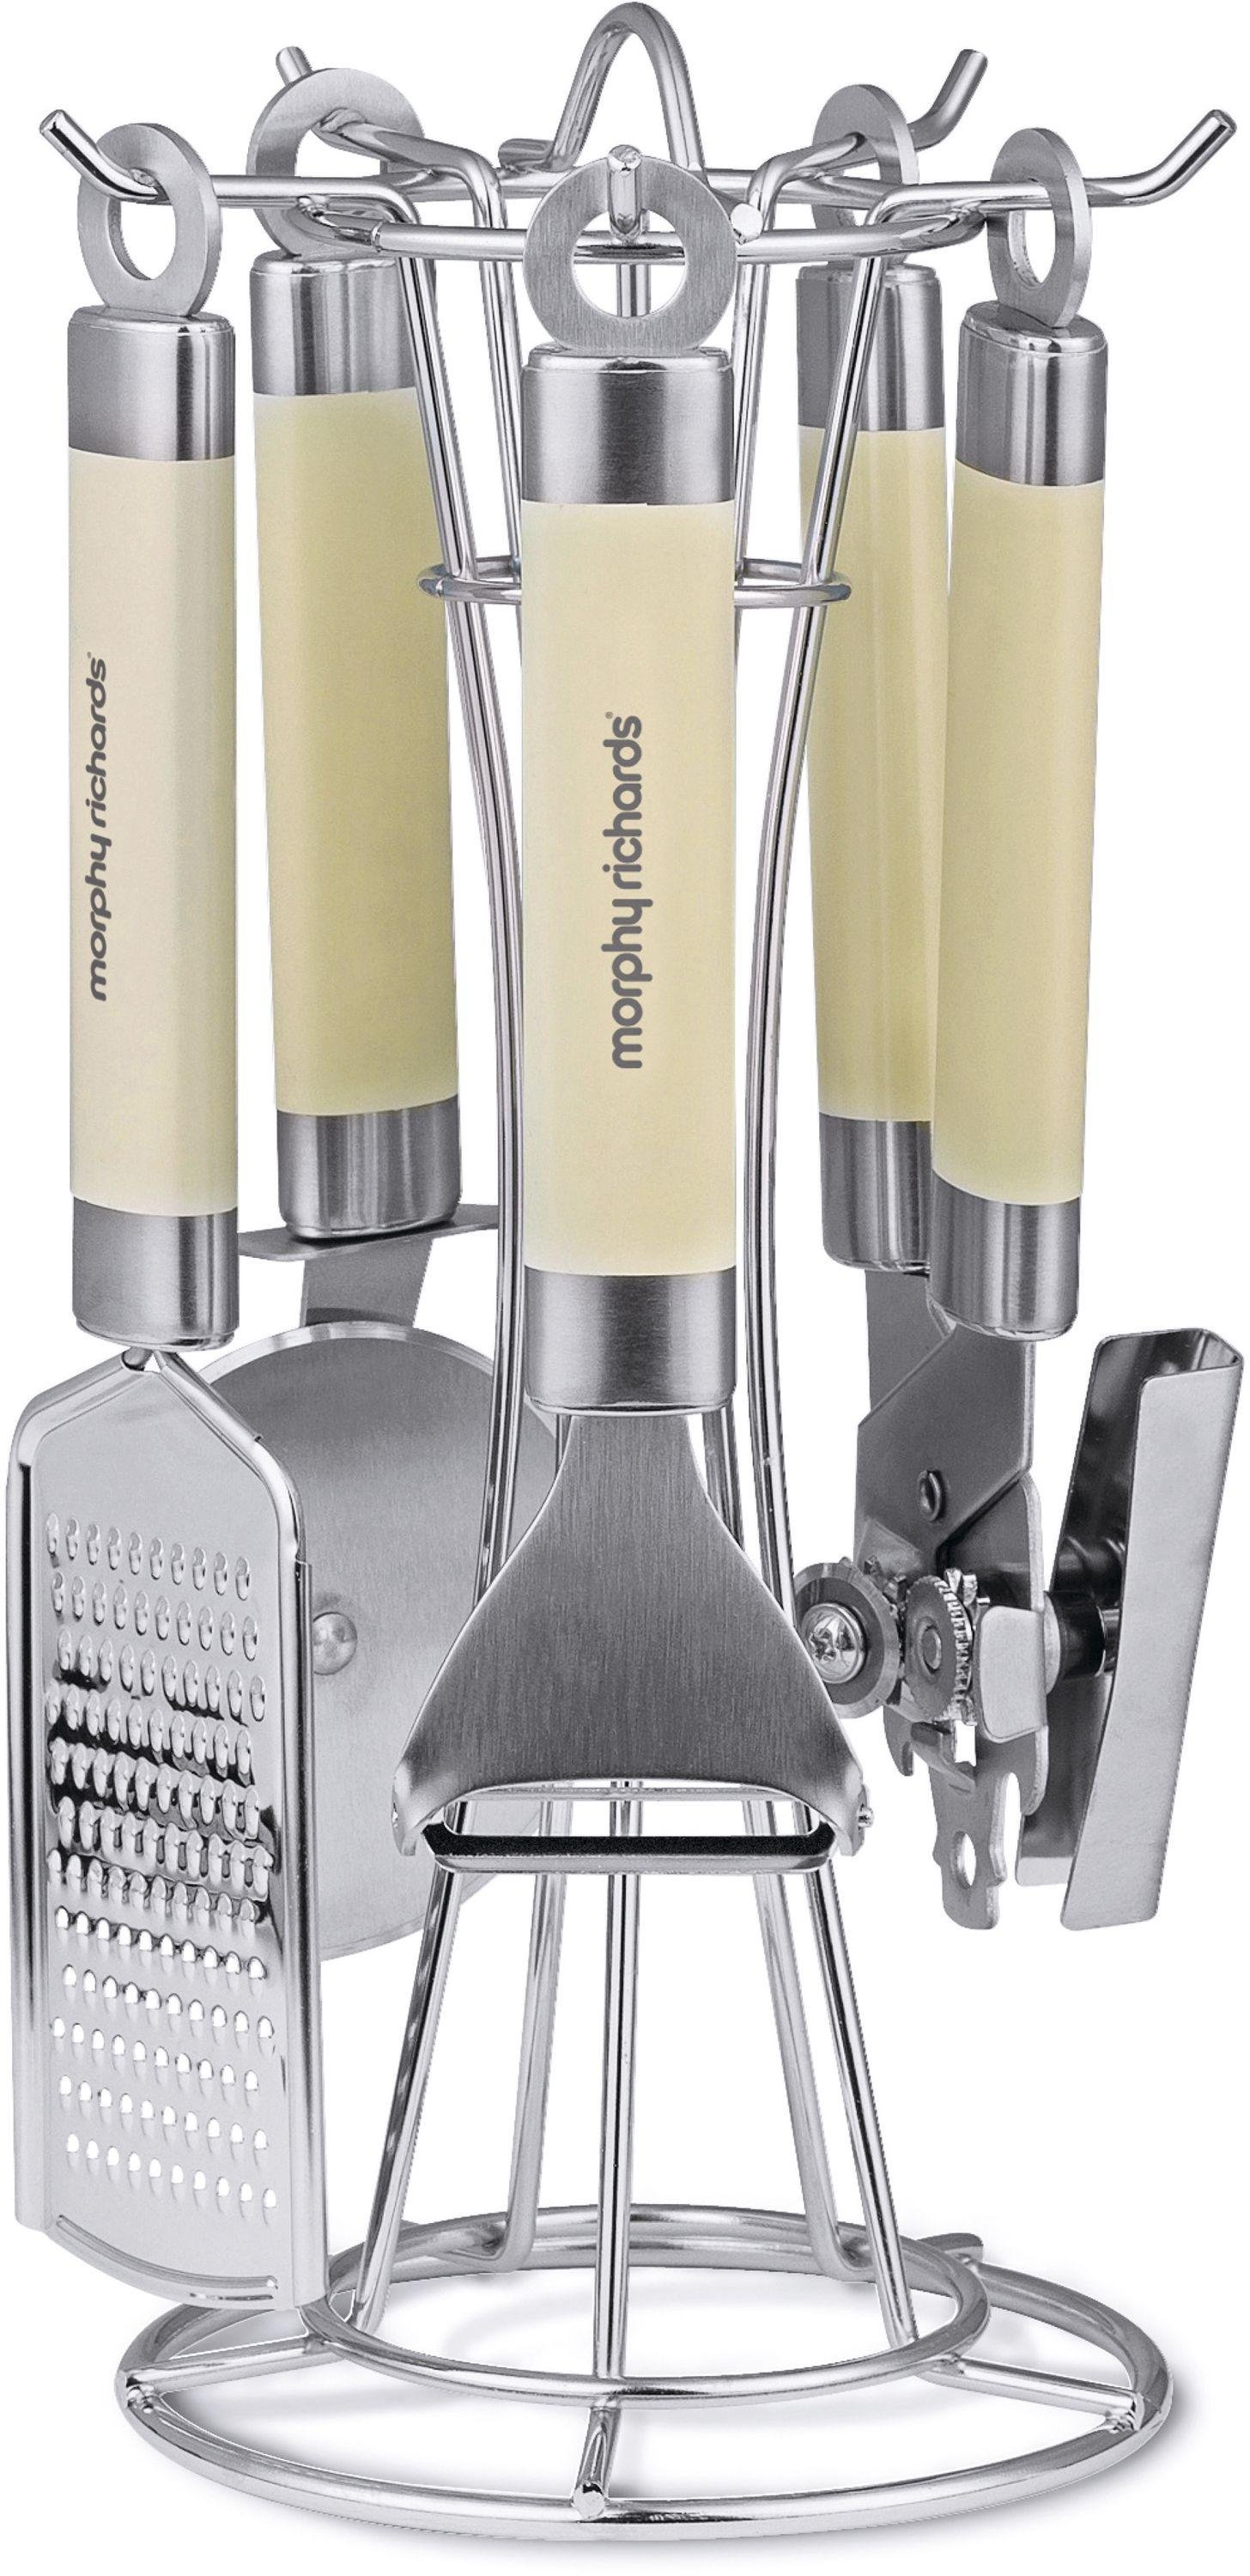 morphy-richards-accents-4-piece-gadget-set-cream